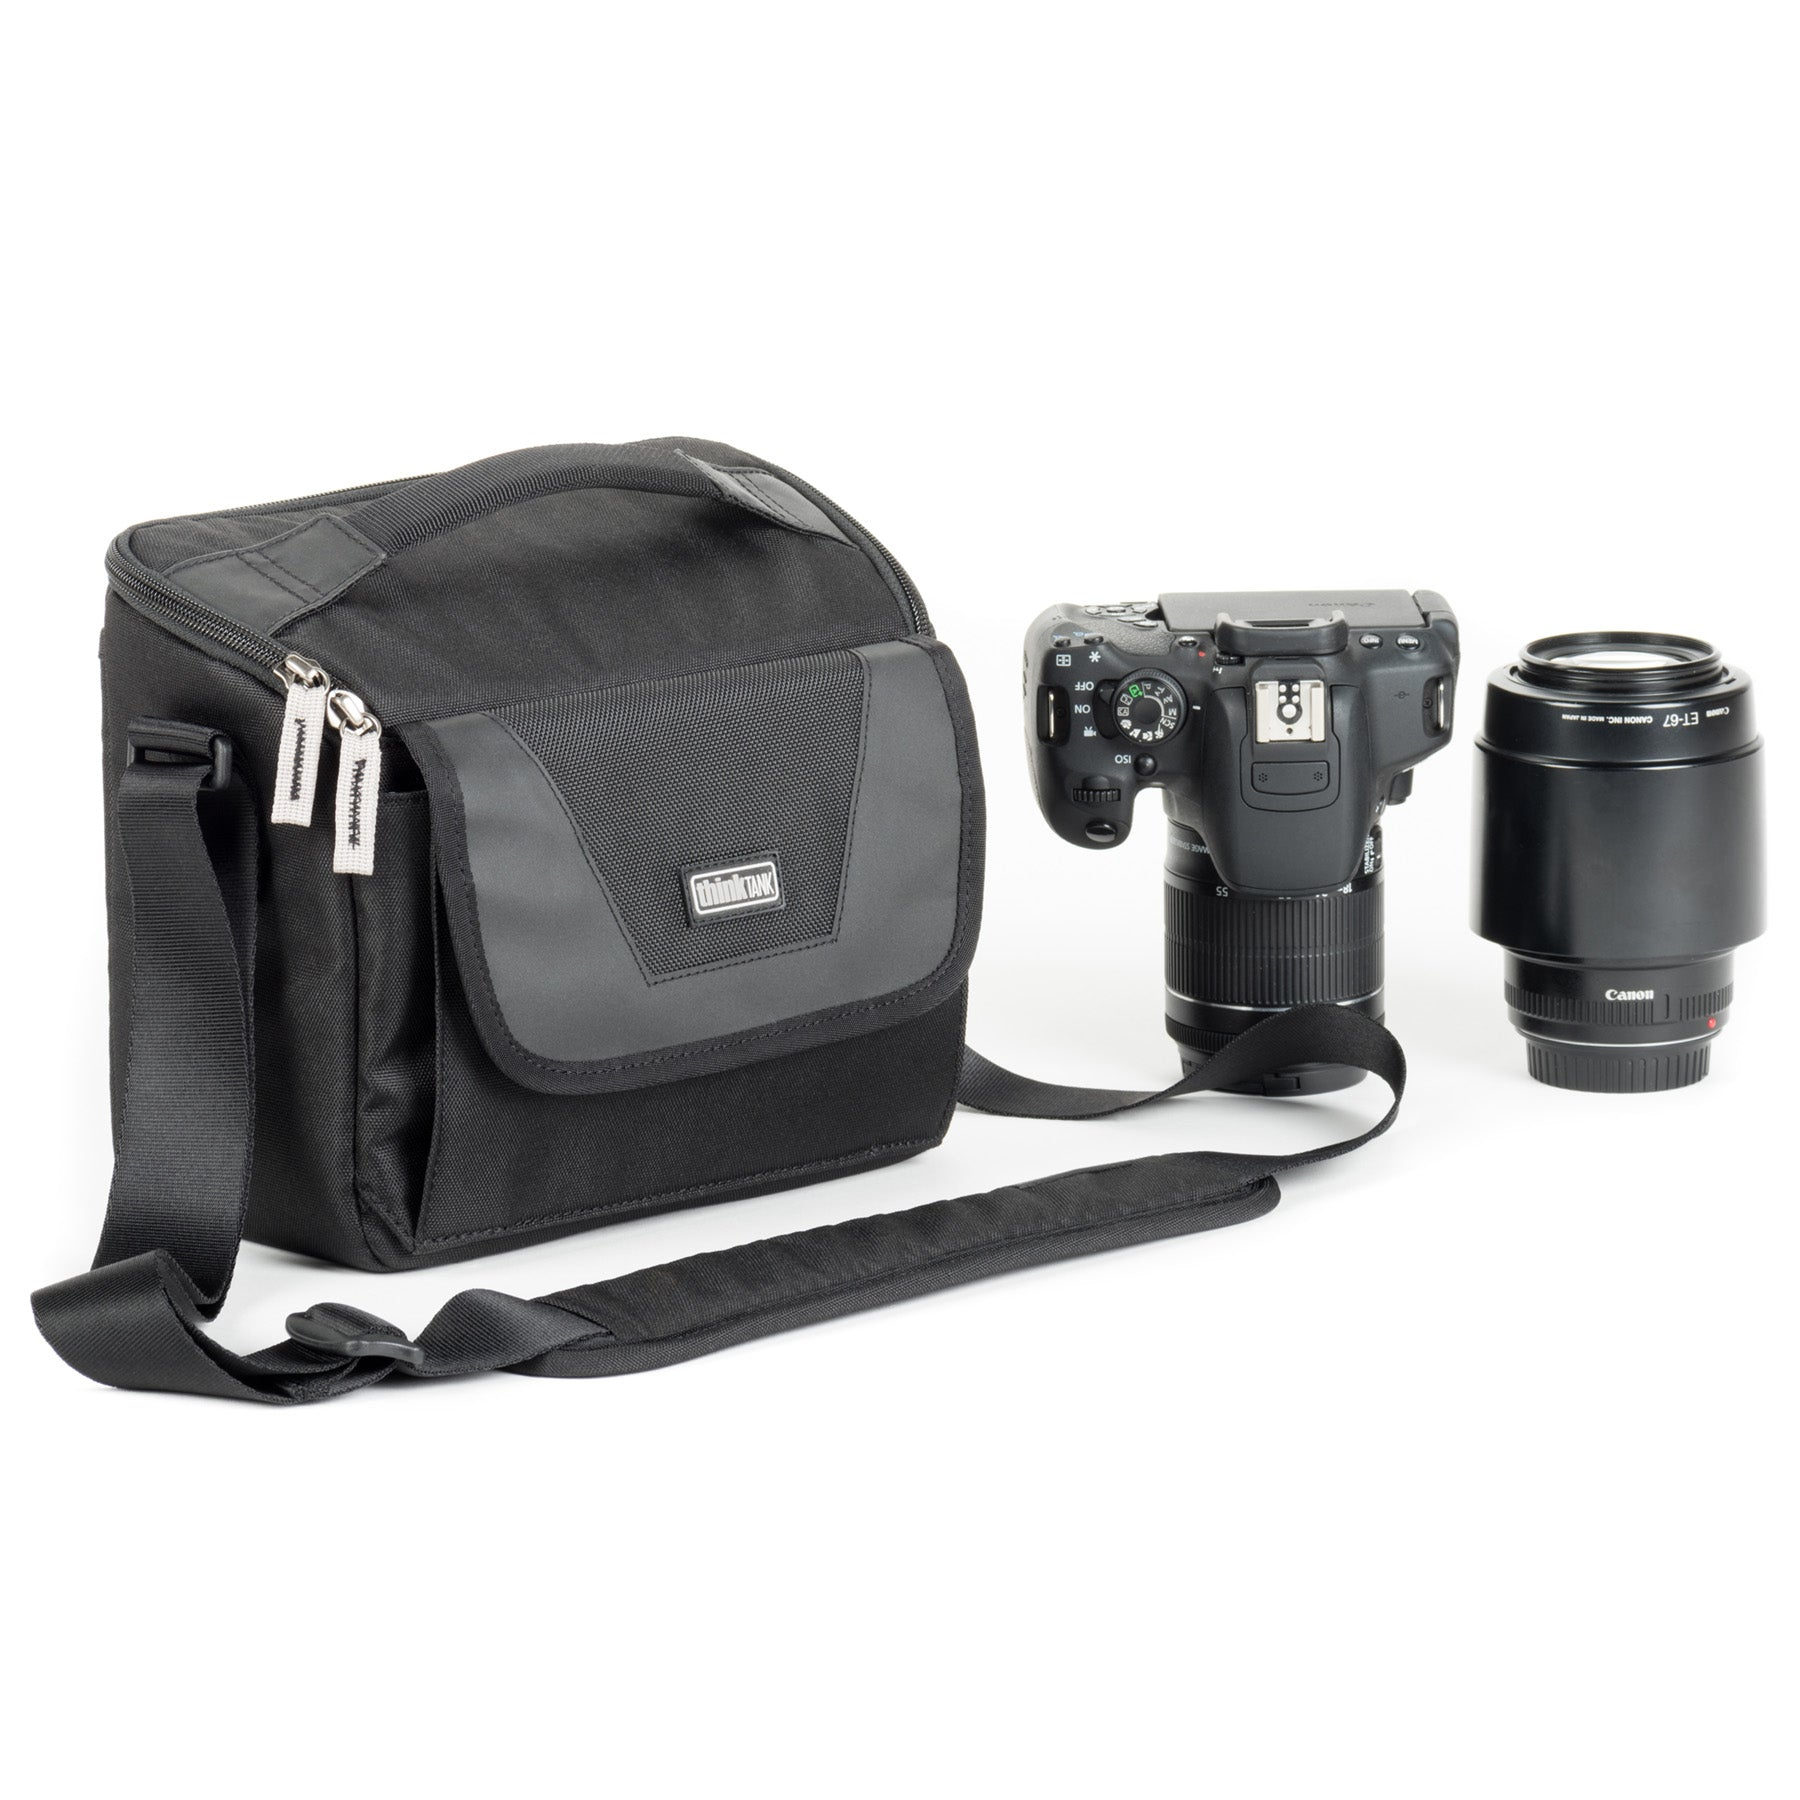 The StoryTeller shoulder bags fit both DSLR and Mirrorless bodies and lenses, and feature a fliptop lid for quick access.